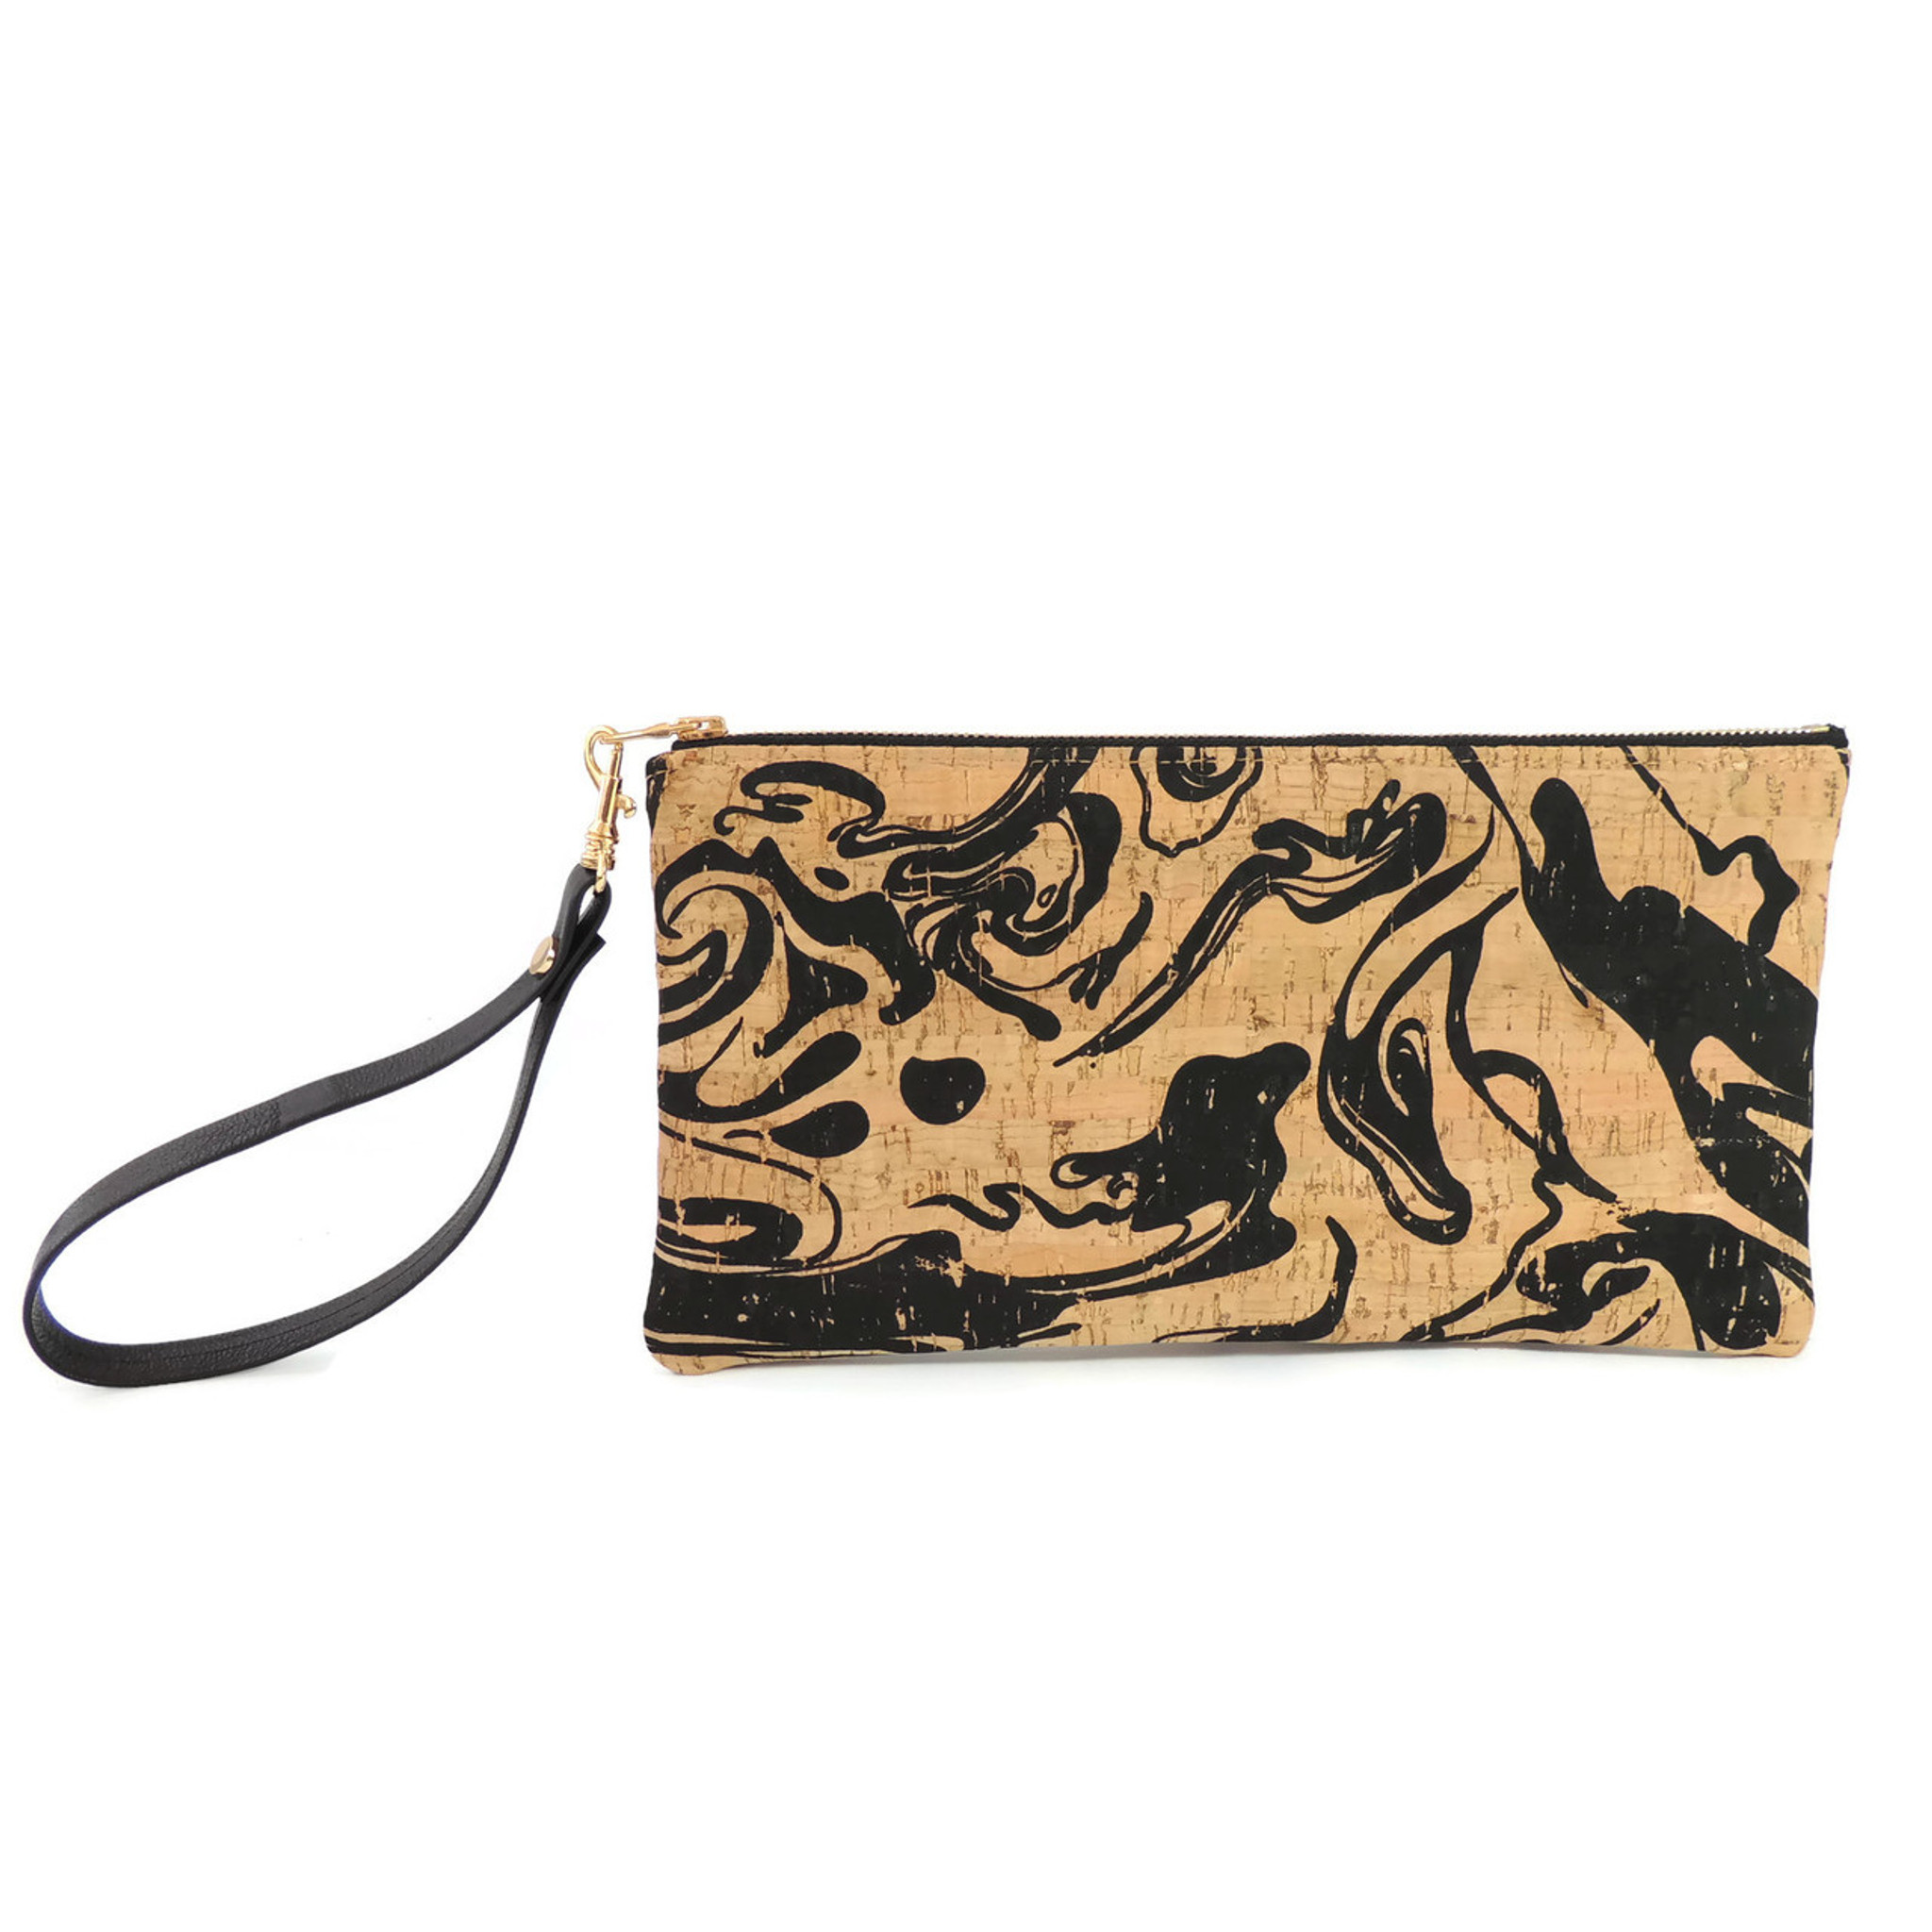 Wristlet in Black Ink Cork